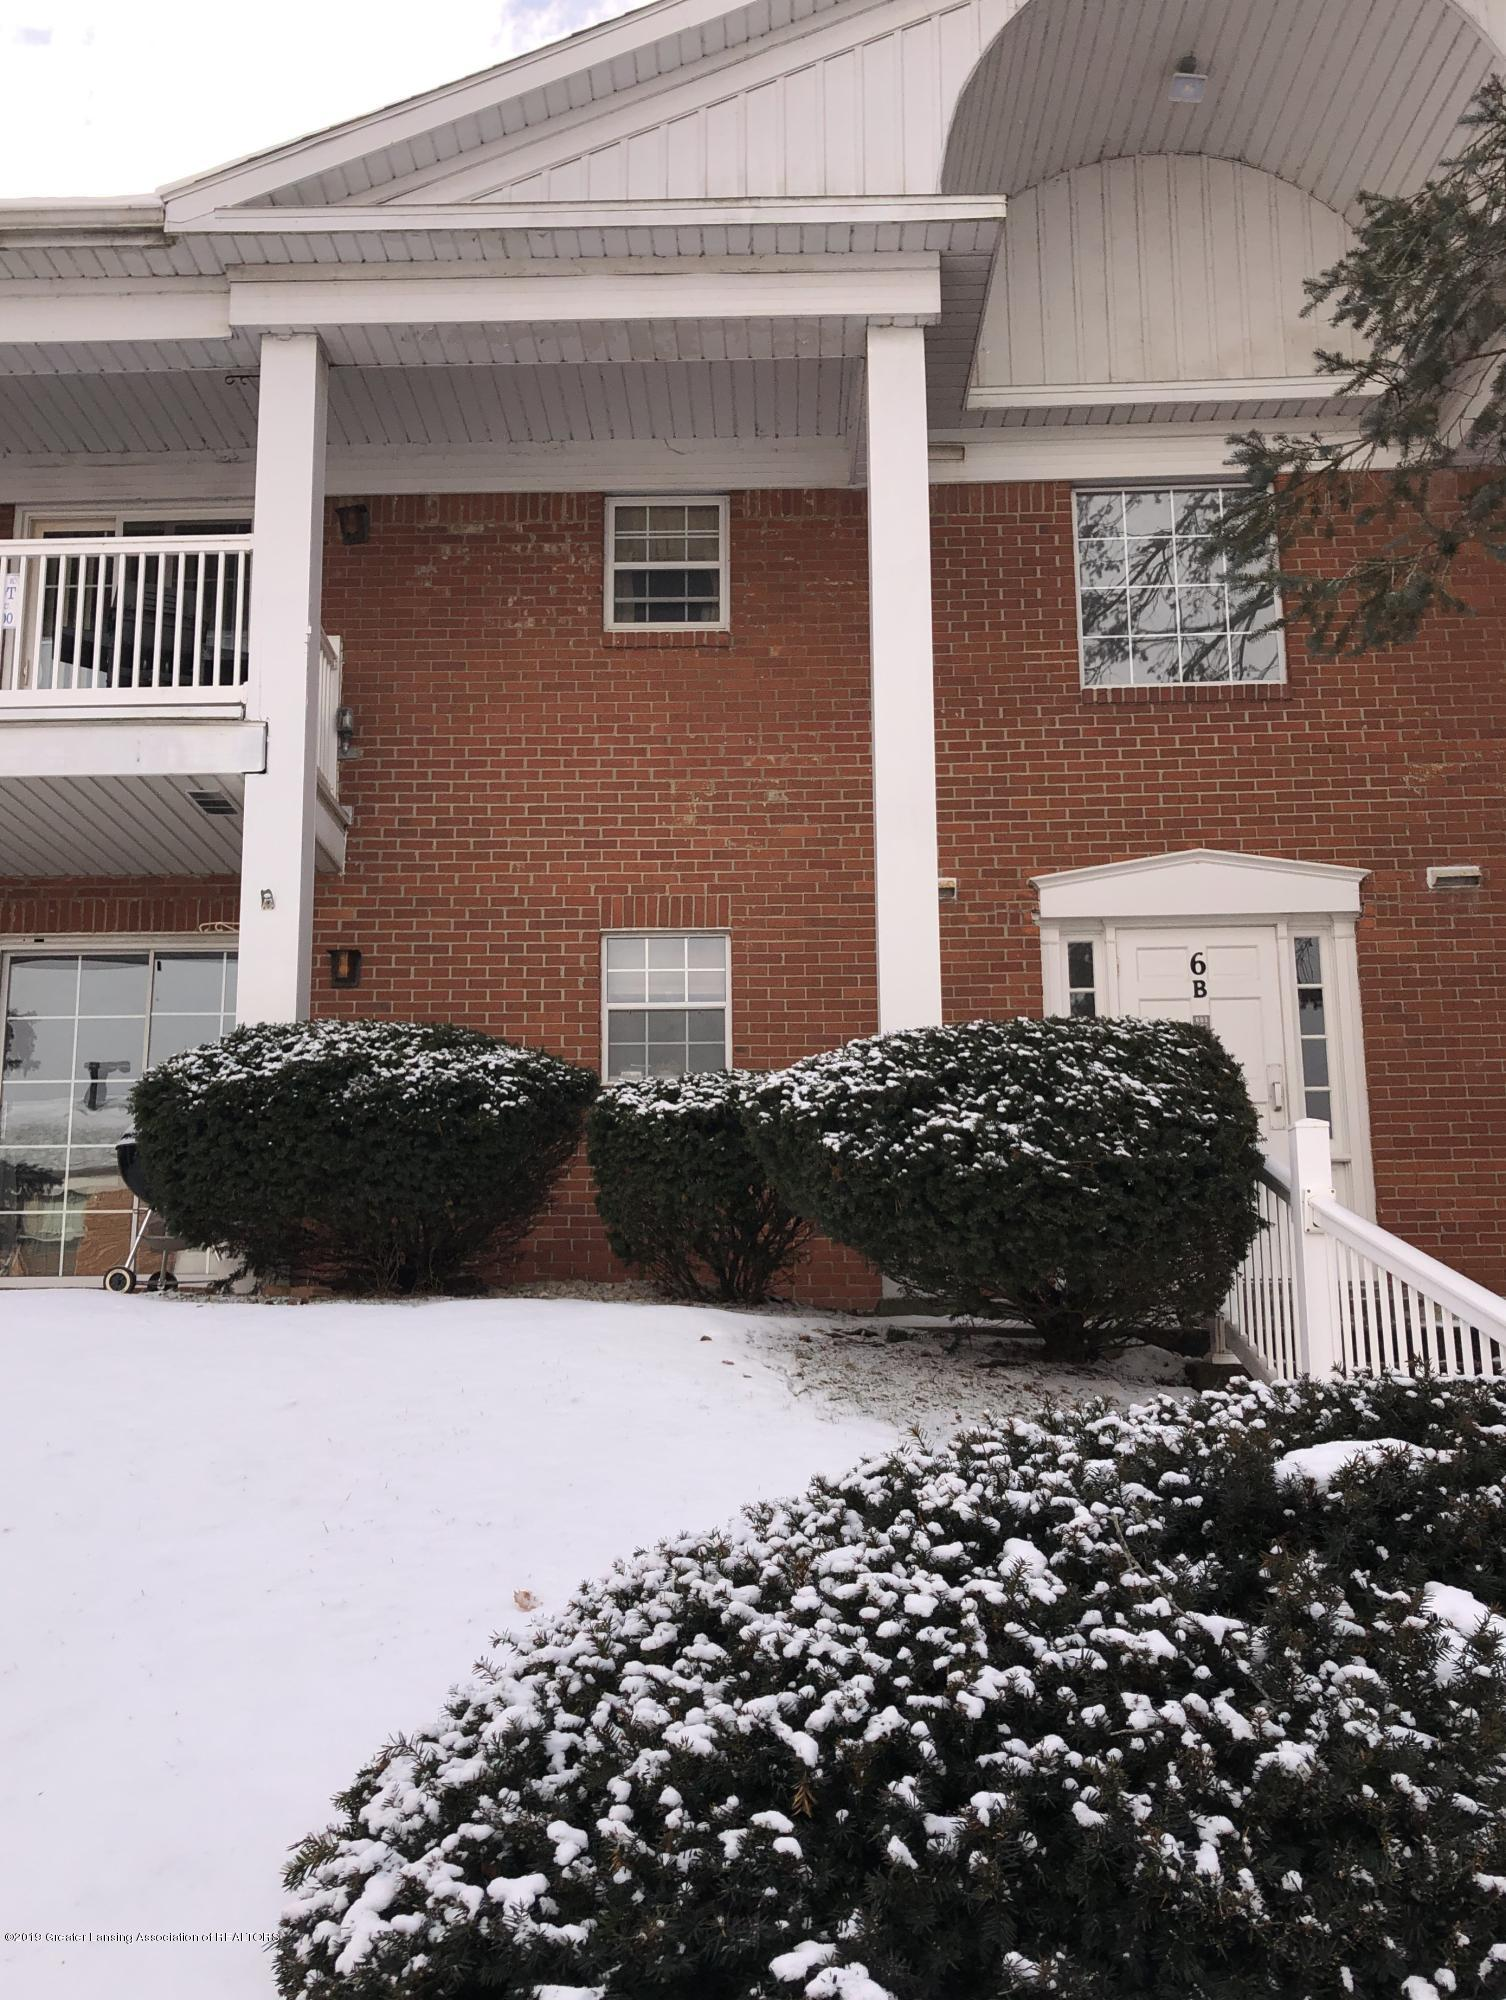 3333 Moores River Dr Apt 610 - FRONT VIEW - winter - 1